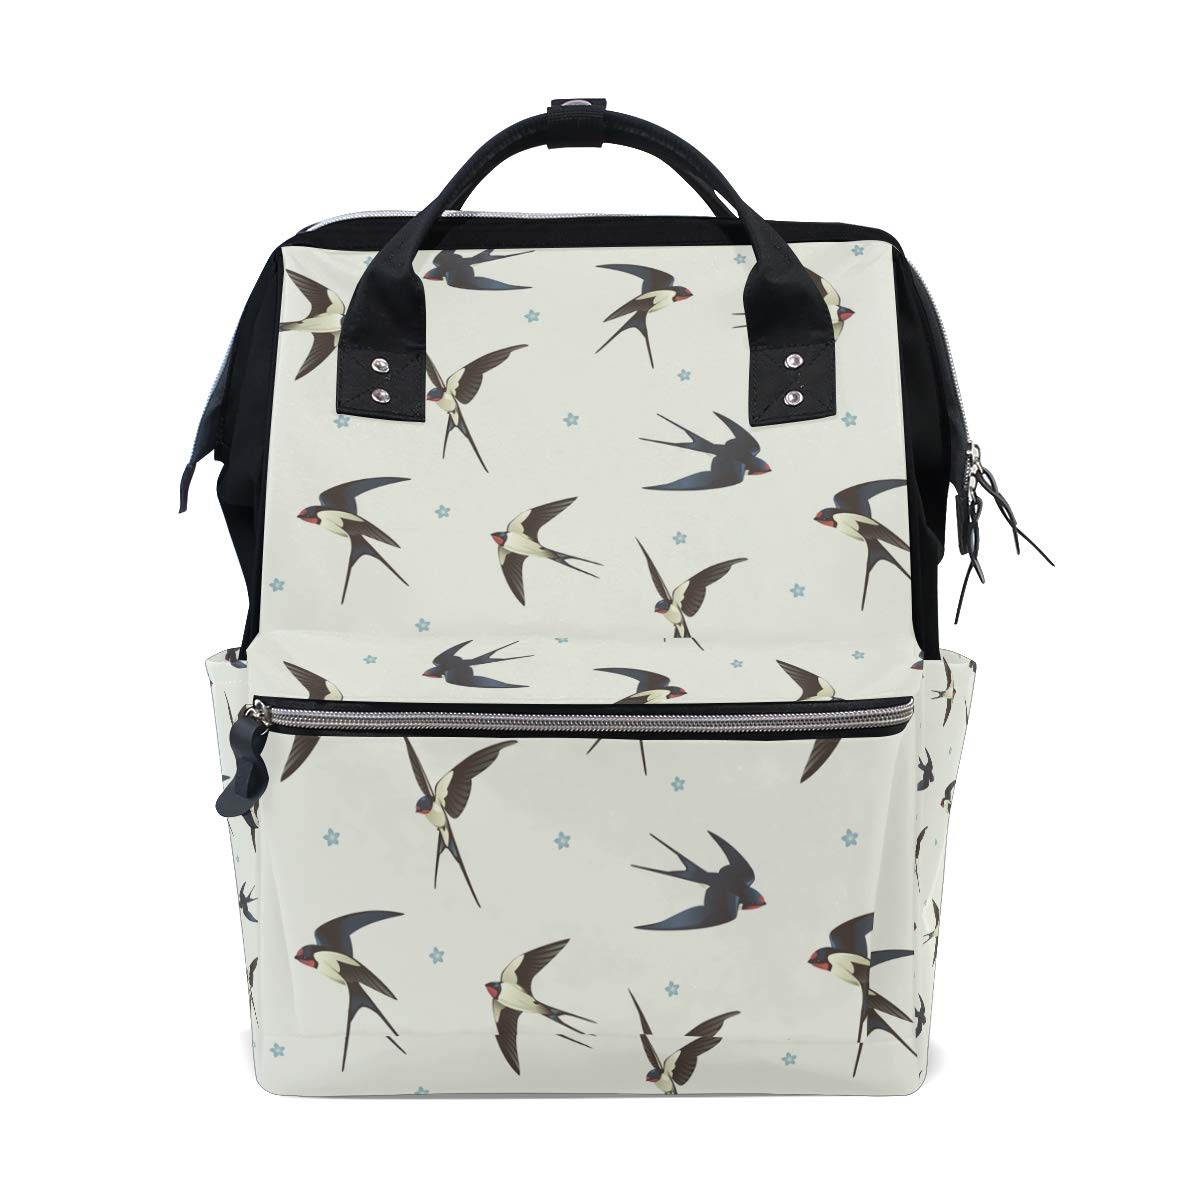 MERRYSUGAR Diaper Bag Backpack Travel Bag Large Multifunction Waterproof Swallow with Star White Stylish and Durable Nappy Bag for Baby Care School Backpack